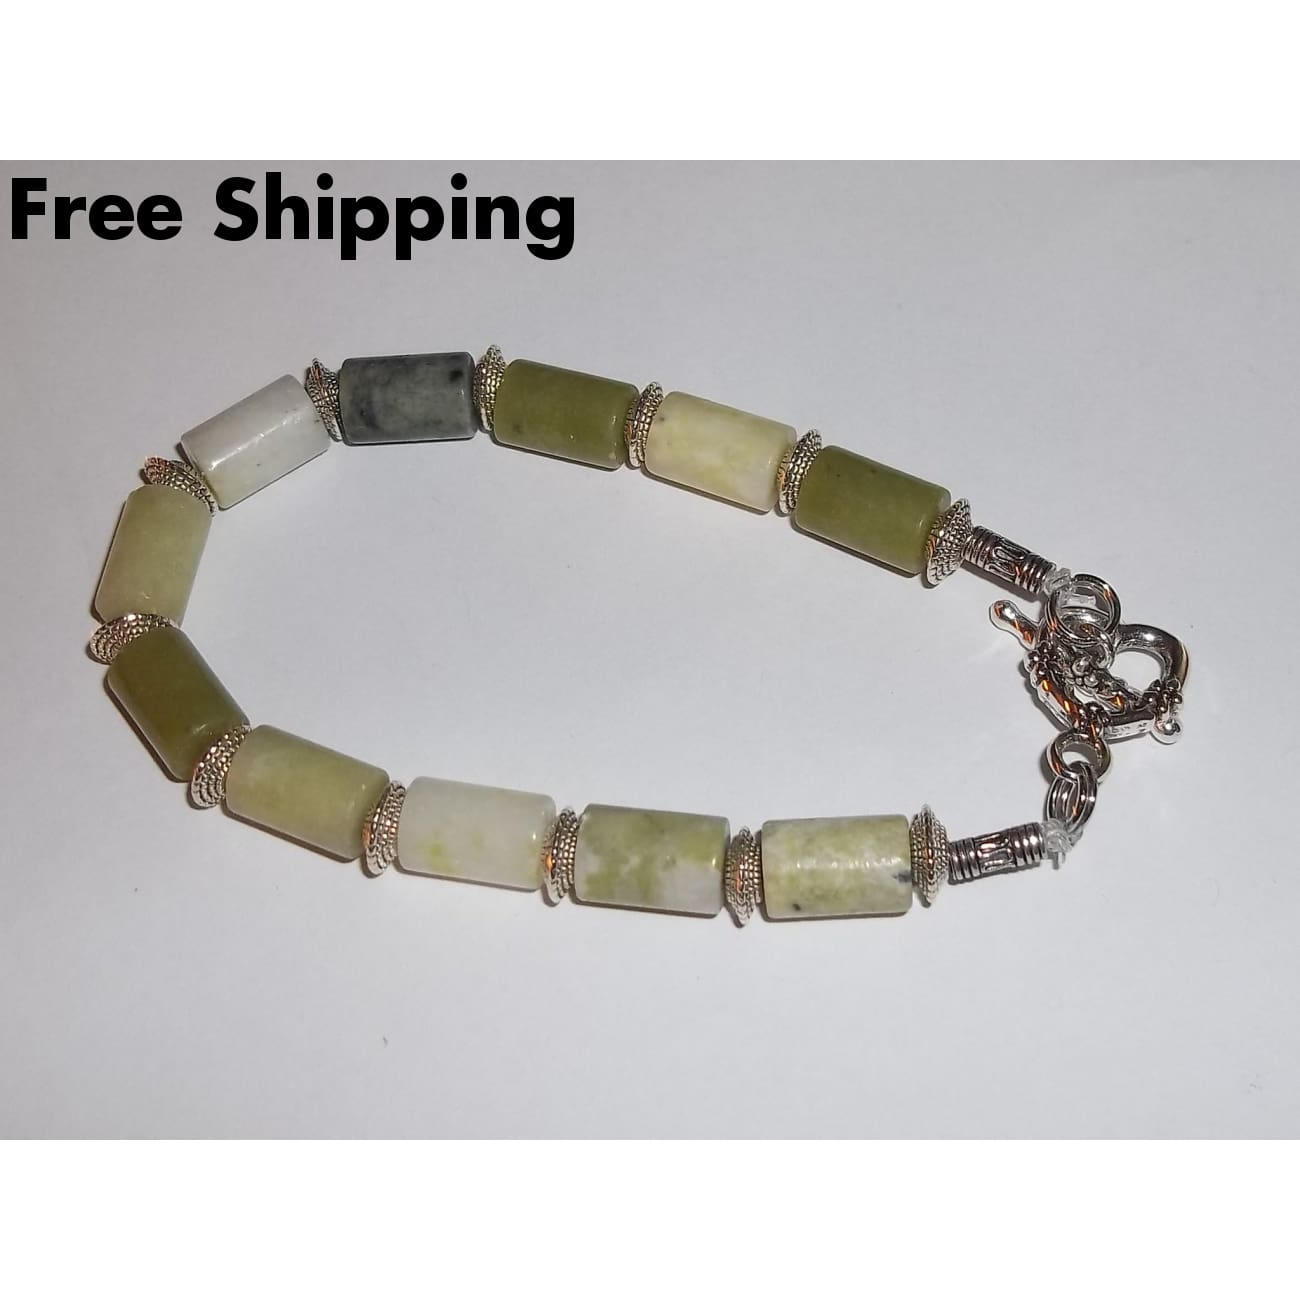 Natural Jade W/ Tibetan Silver Accent Beads And Heart Toggle Clasp Hand Crafted Bracelet - Bracelets